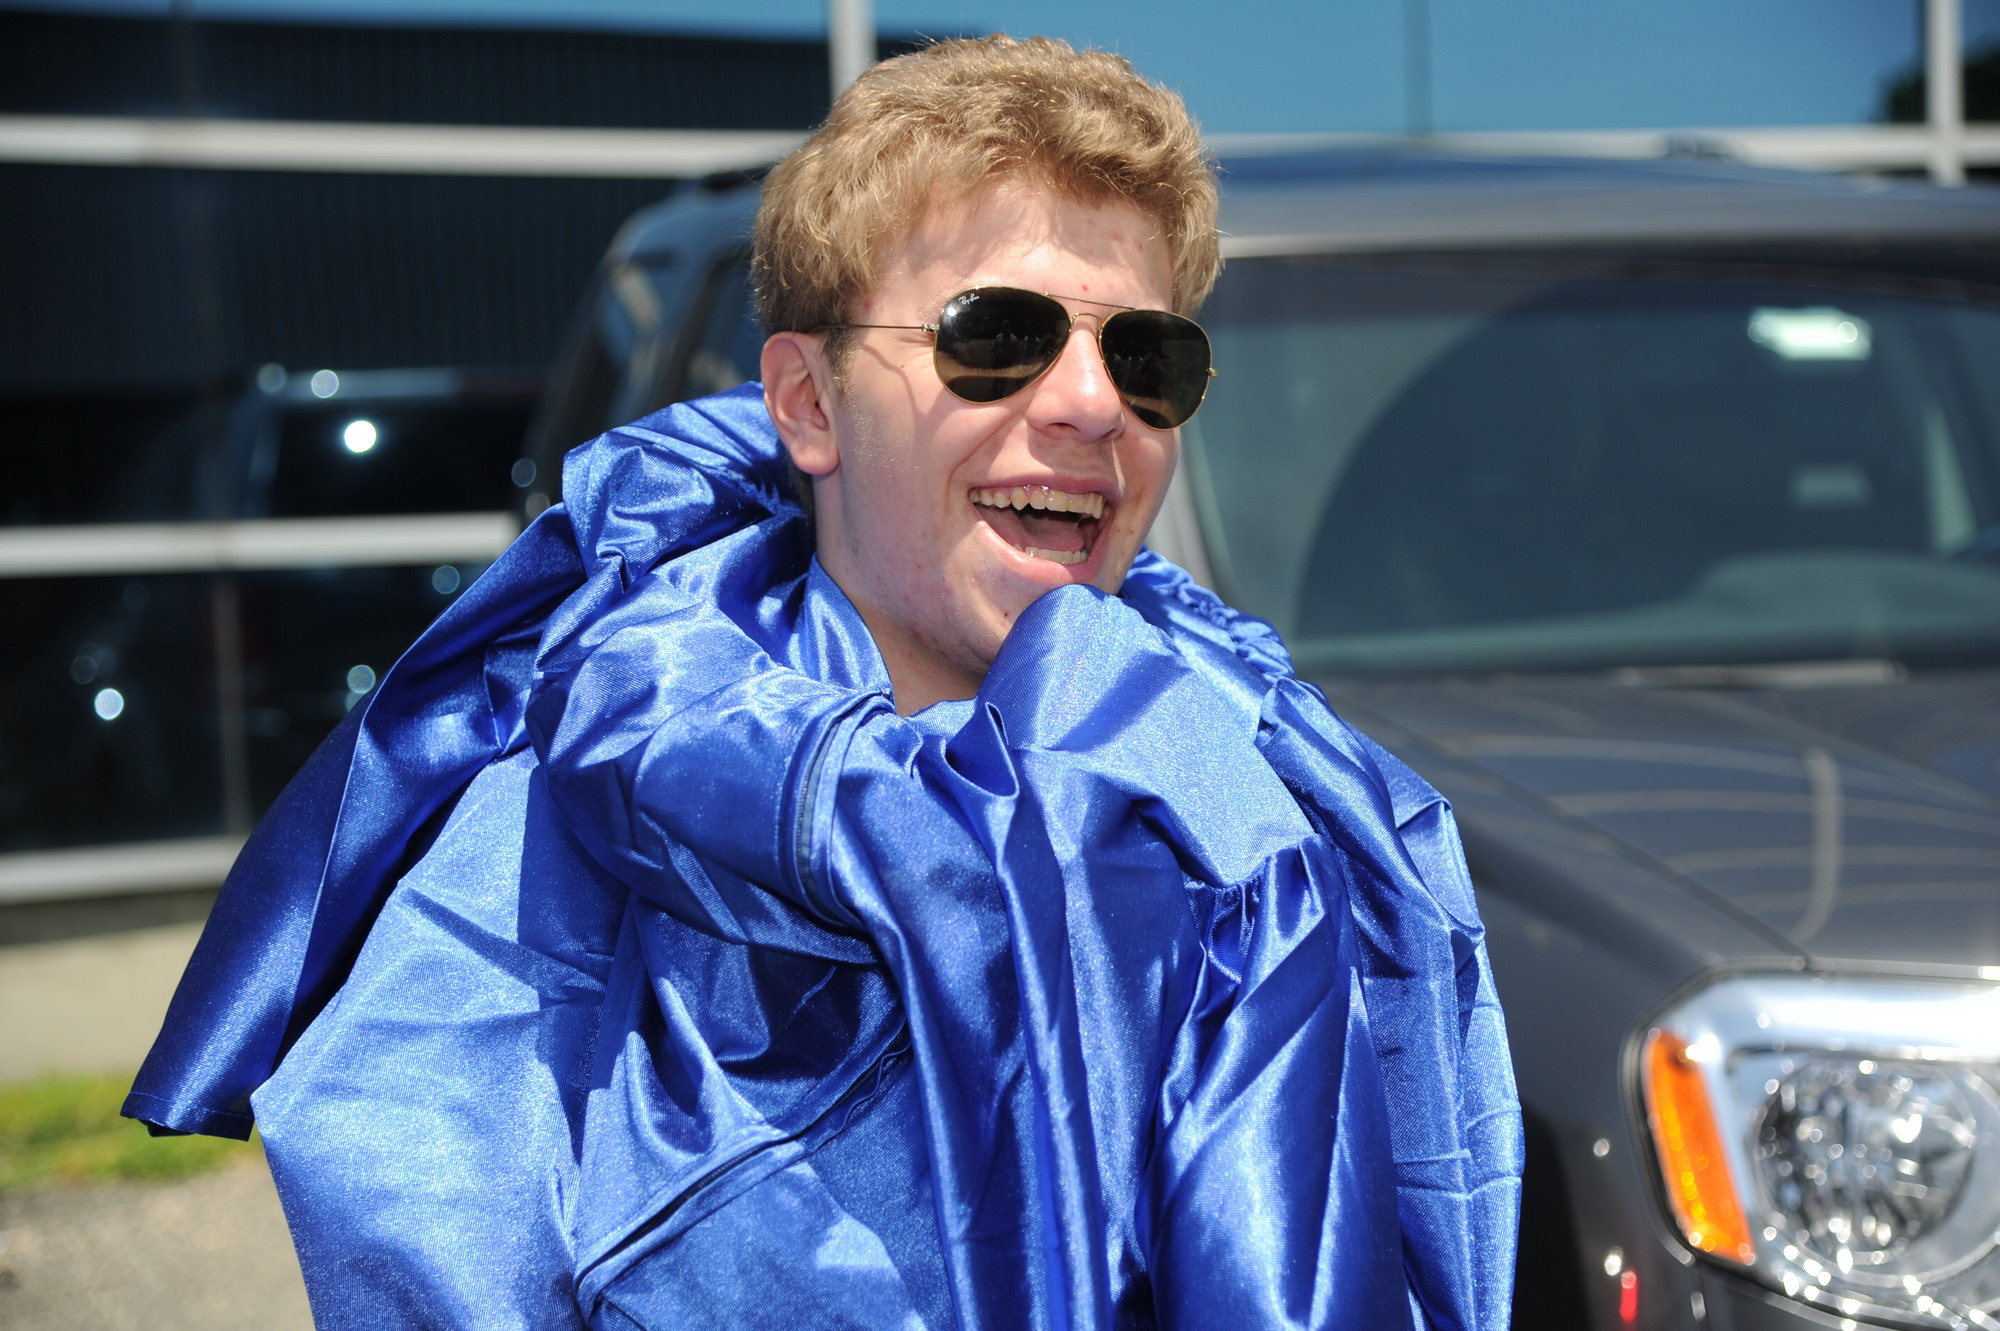 Jacob Garber had a laugh getting his robe on before commencement.